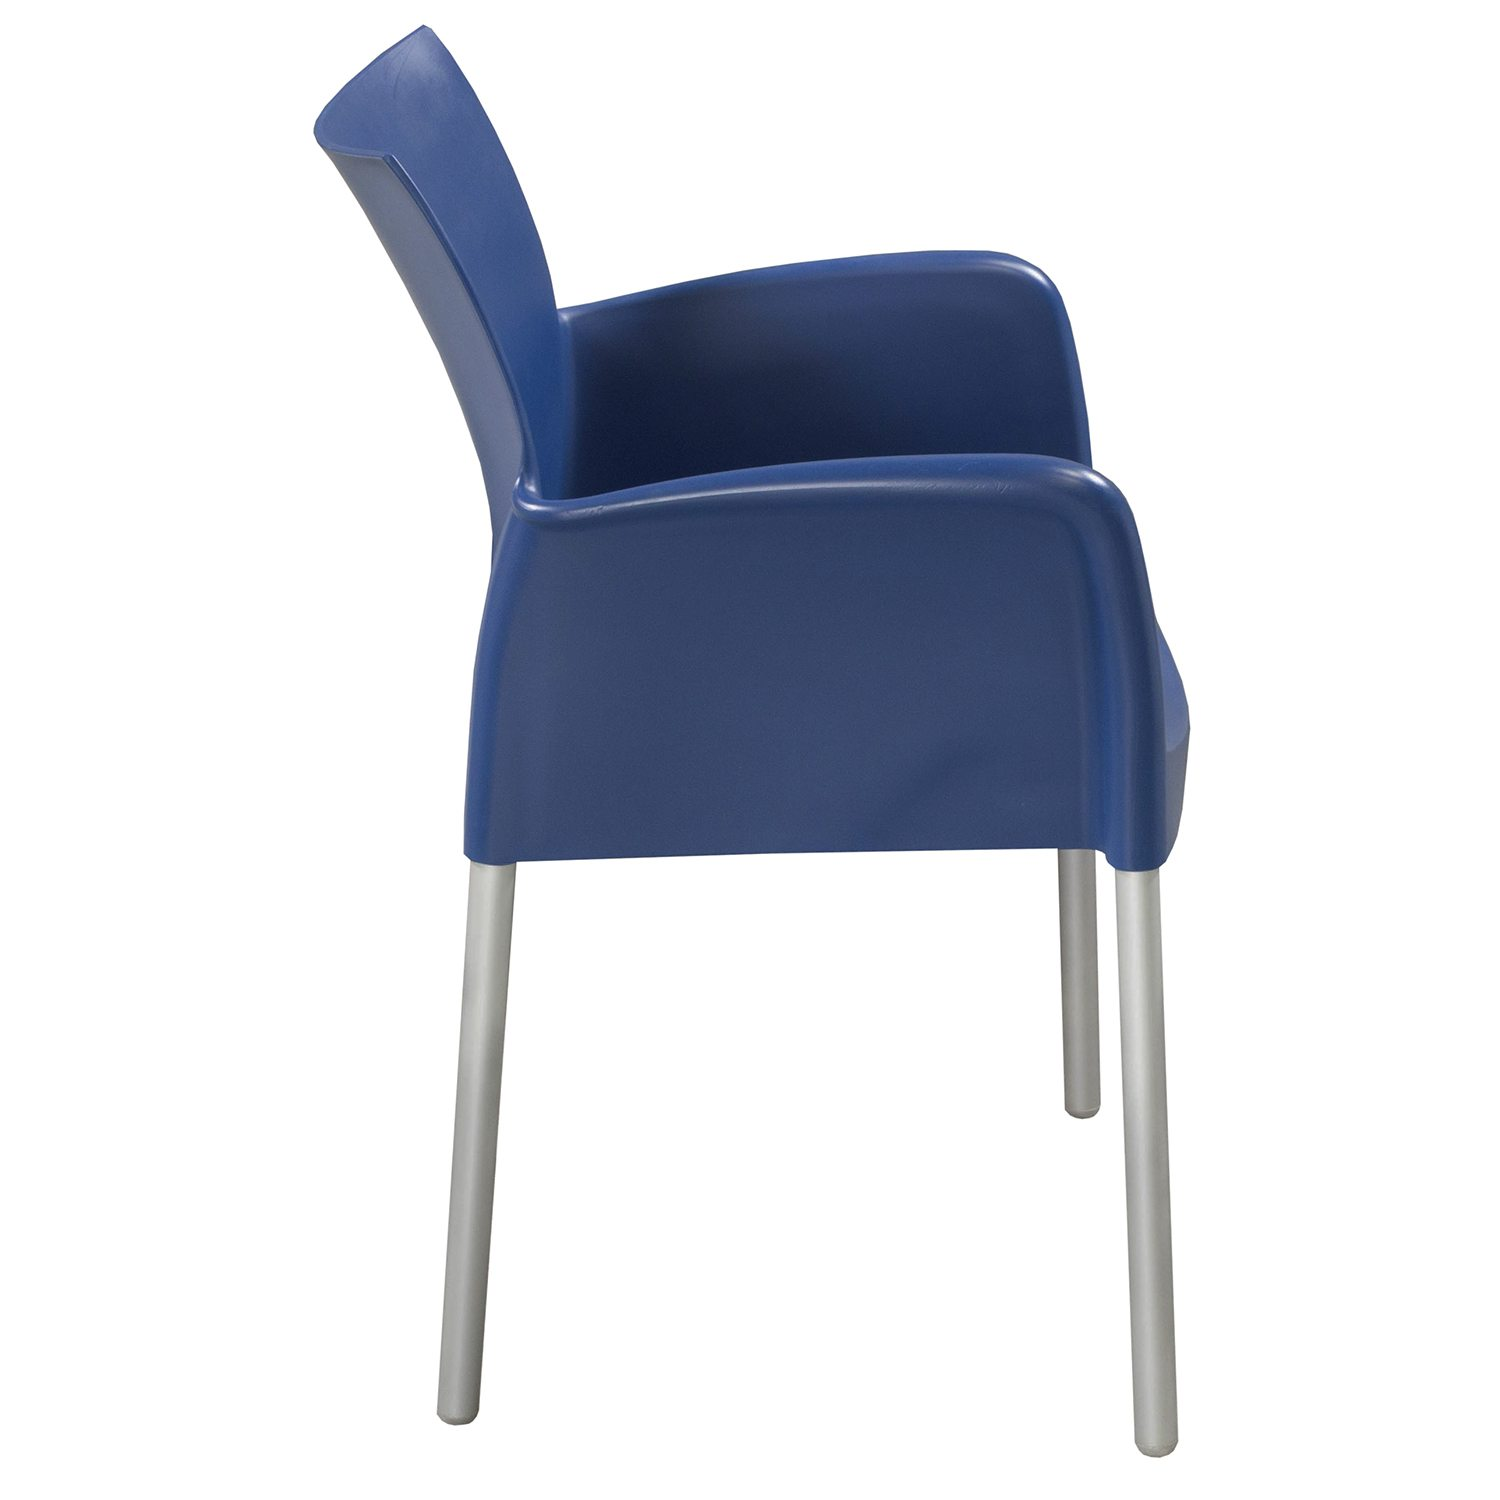 lunch room chairs baby shower chair rental in boston ma pedarali ice used break w arms blue